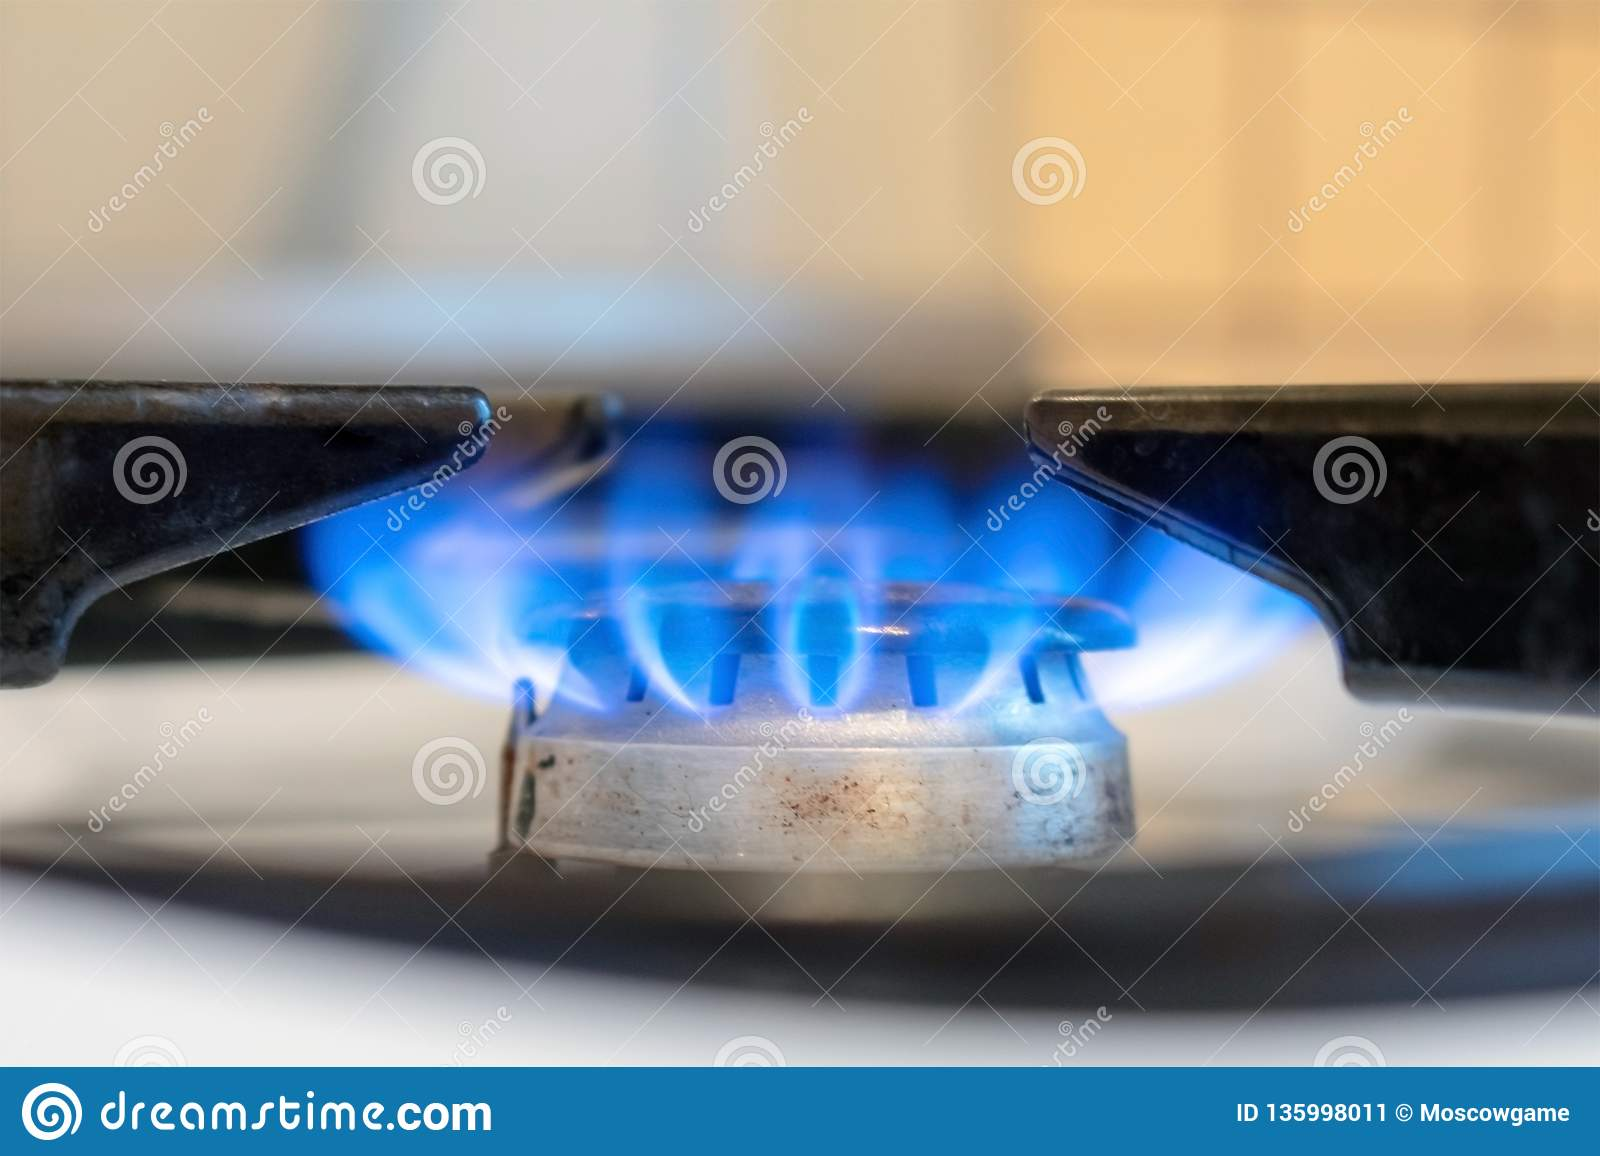 Old kitchen stove cook with blue flames burning. Can be a source of fire or explosion. Household gas stove. In kitchen room